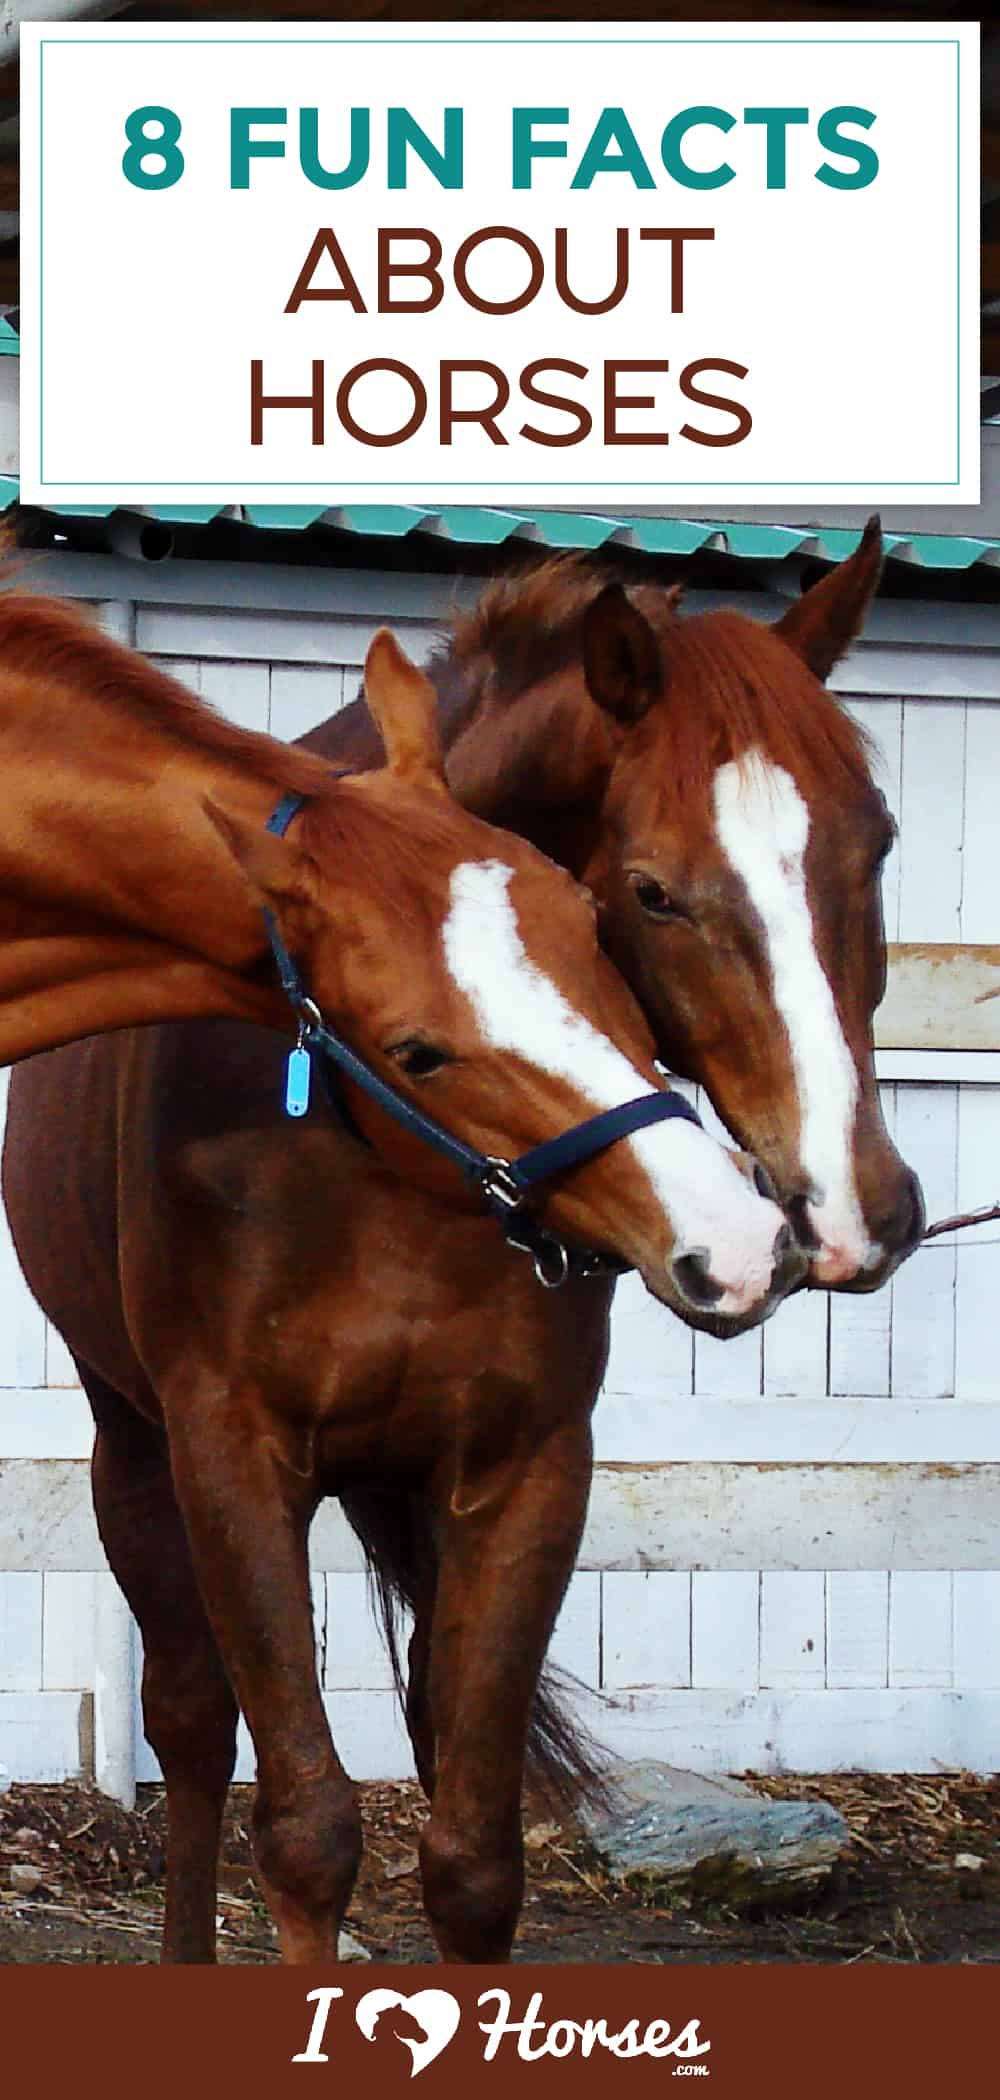 8 Fun Facts About Horses